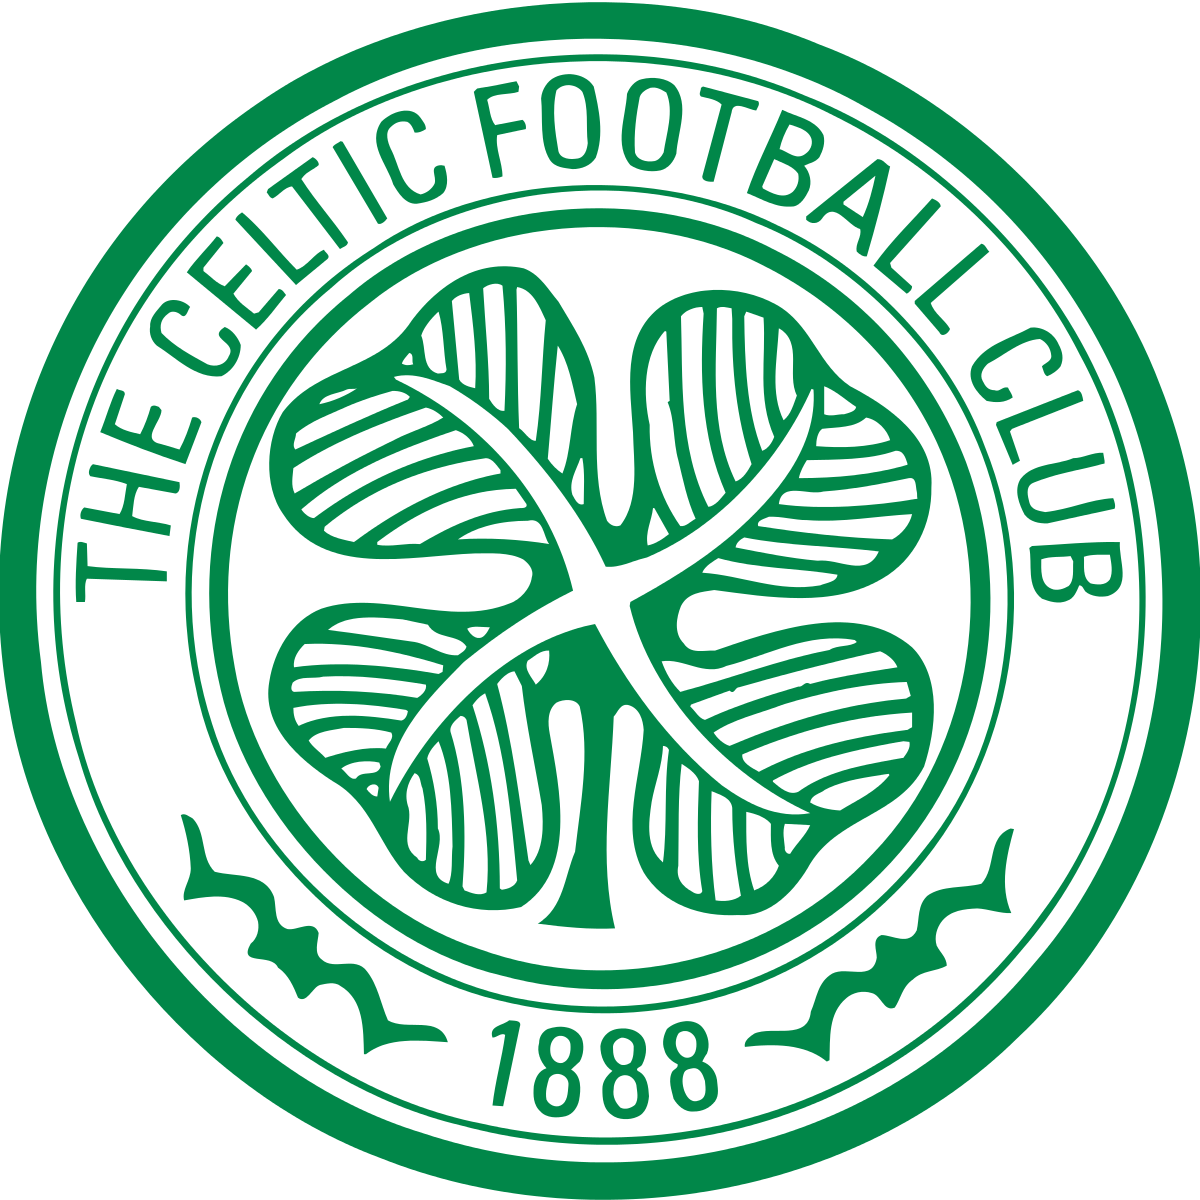 celtic fc news